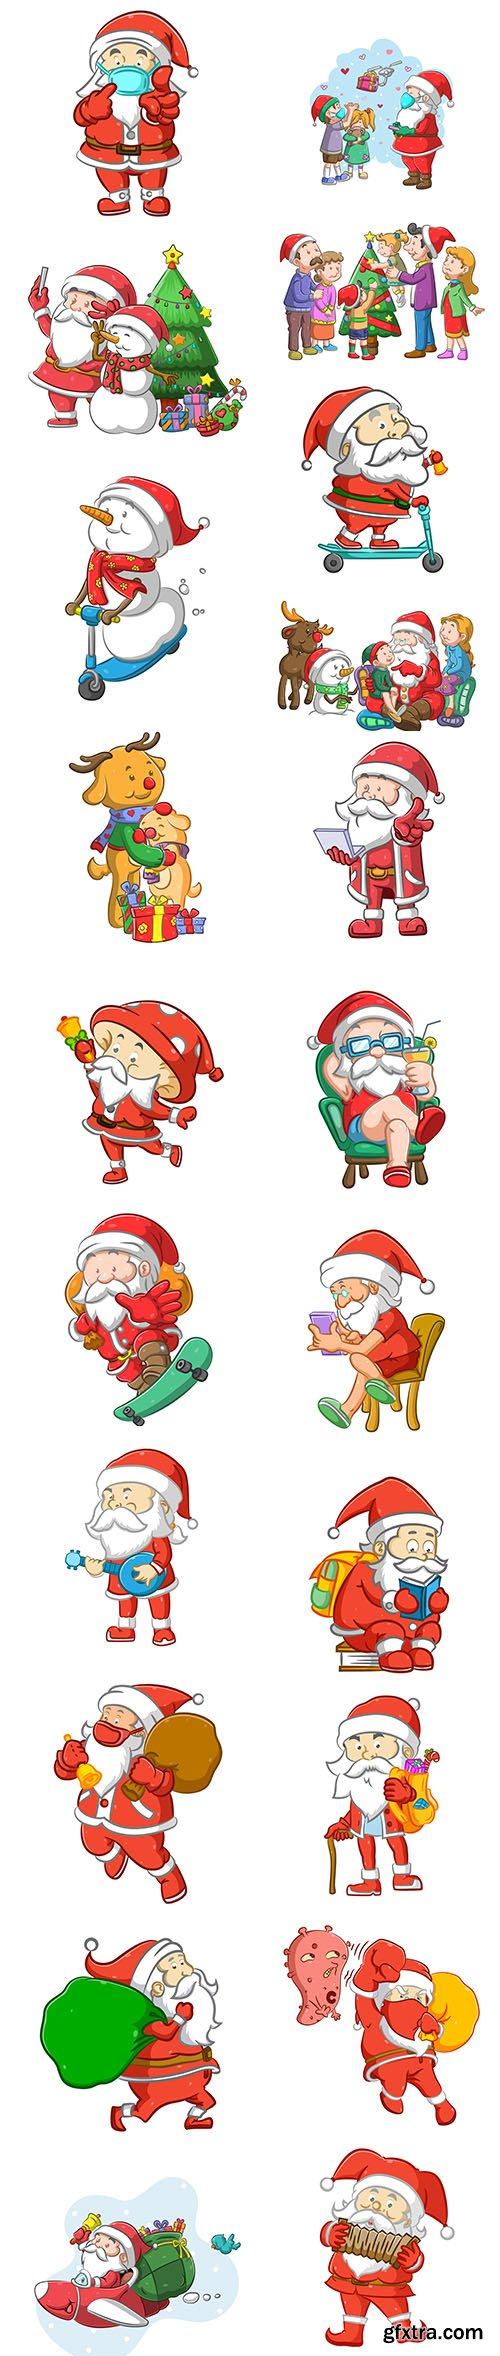 Santa Claus and Snowman illustrations